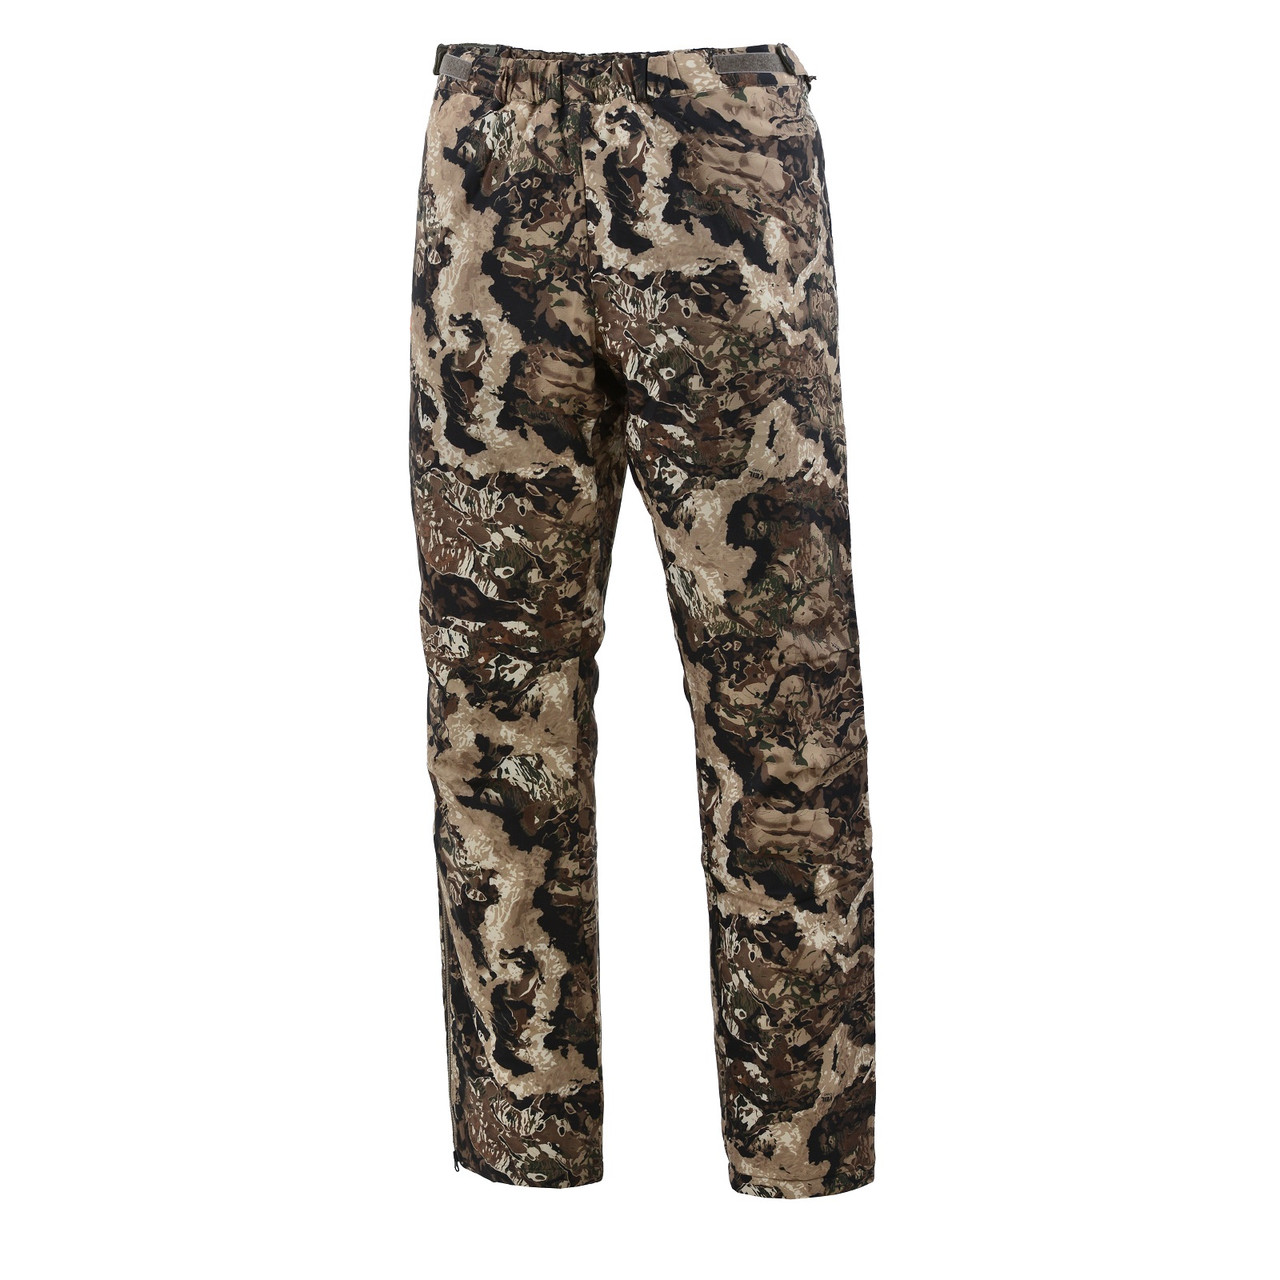 Nomad Men's Hardfrost Camo Hunting Pant N2000057